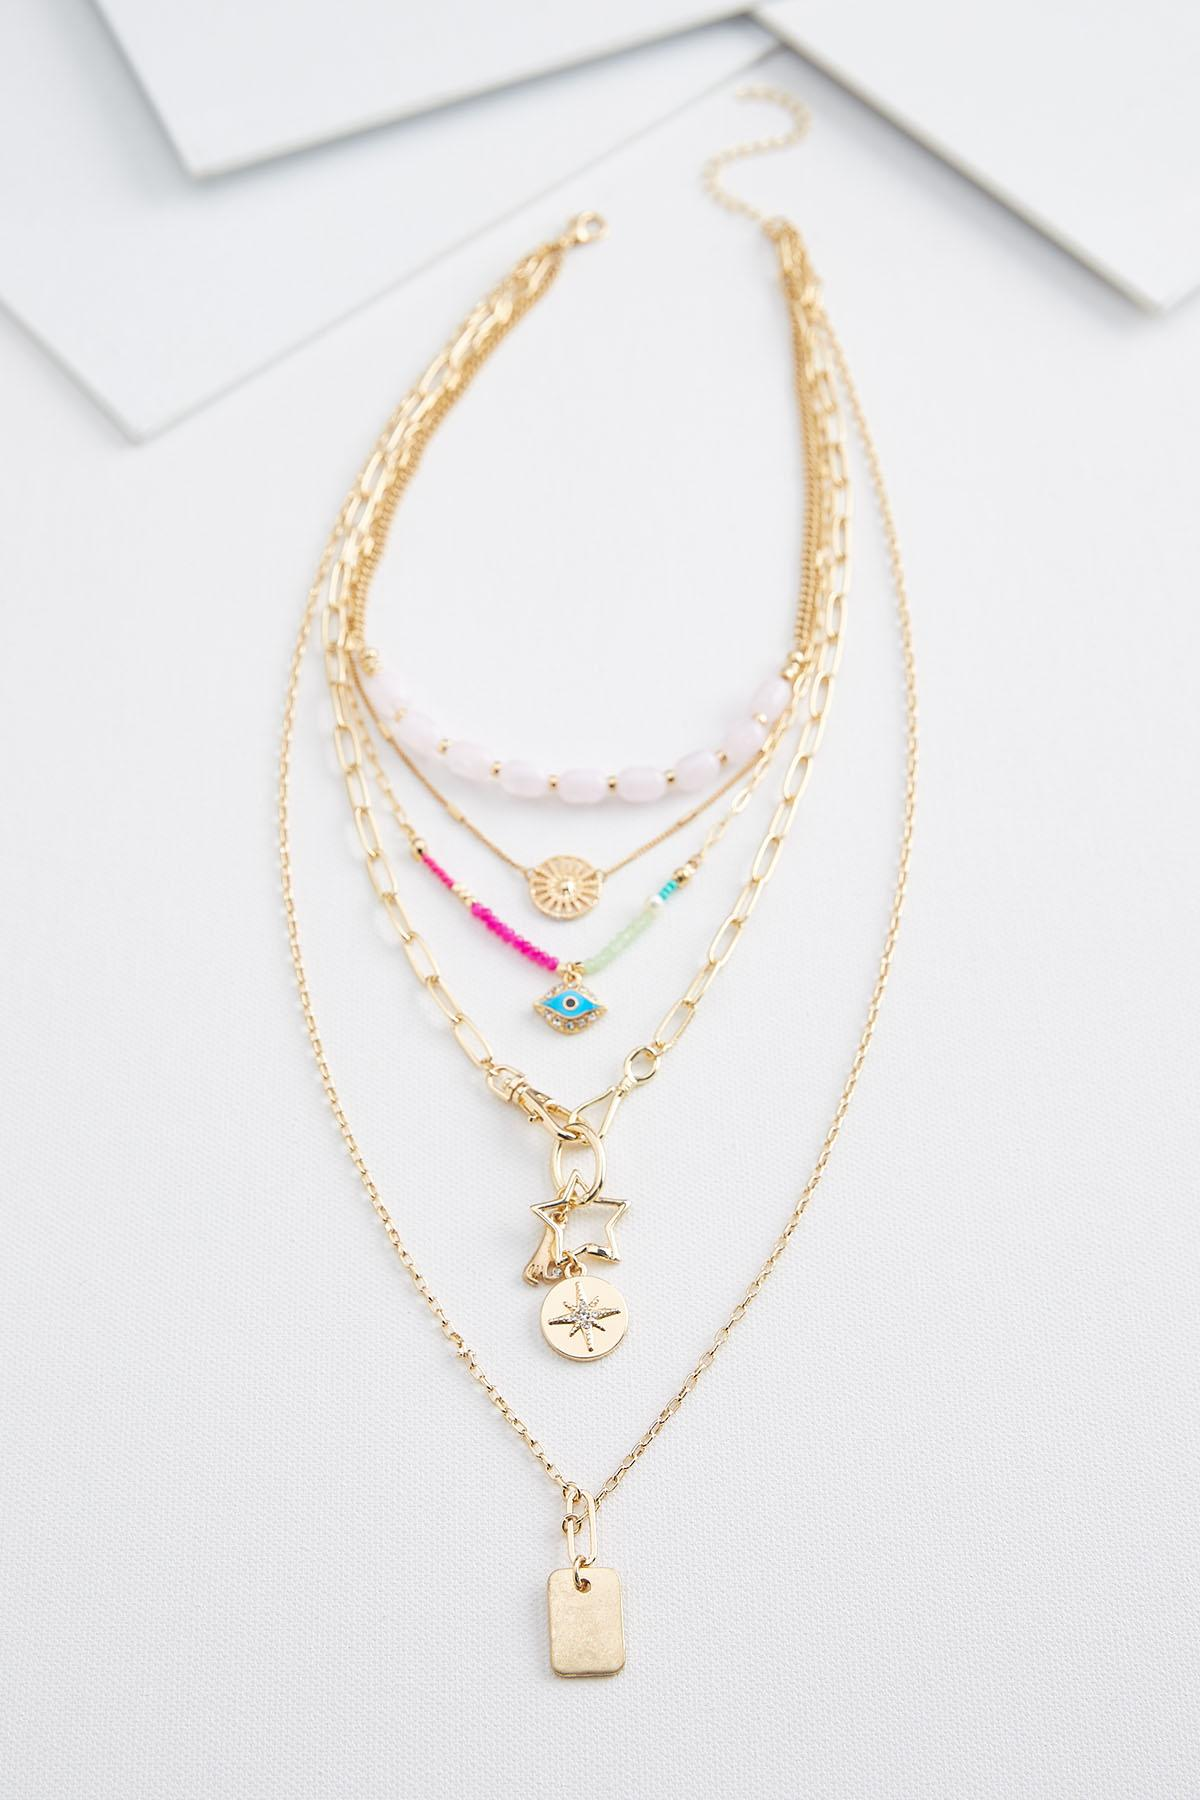 Whimsical Layered Necklace